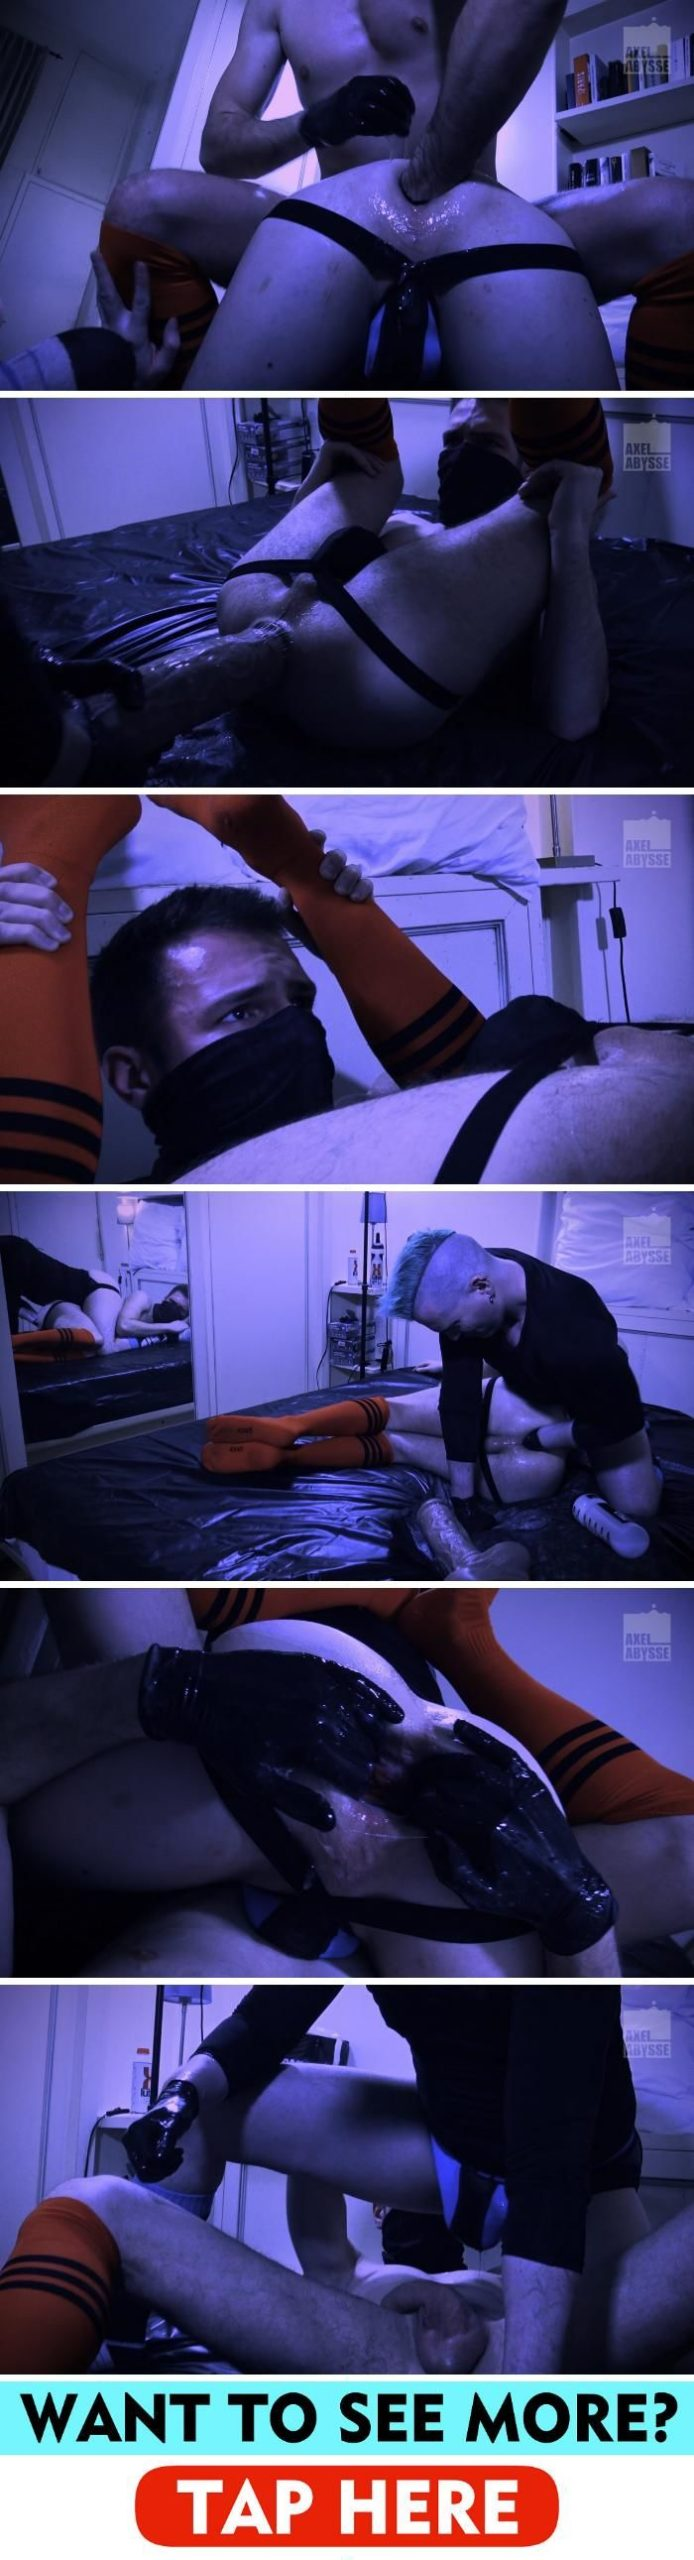 Harvyap & Axel Abysse – The Other Side – Part 2 1